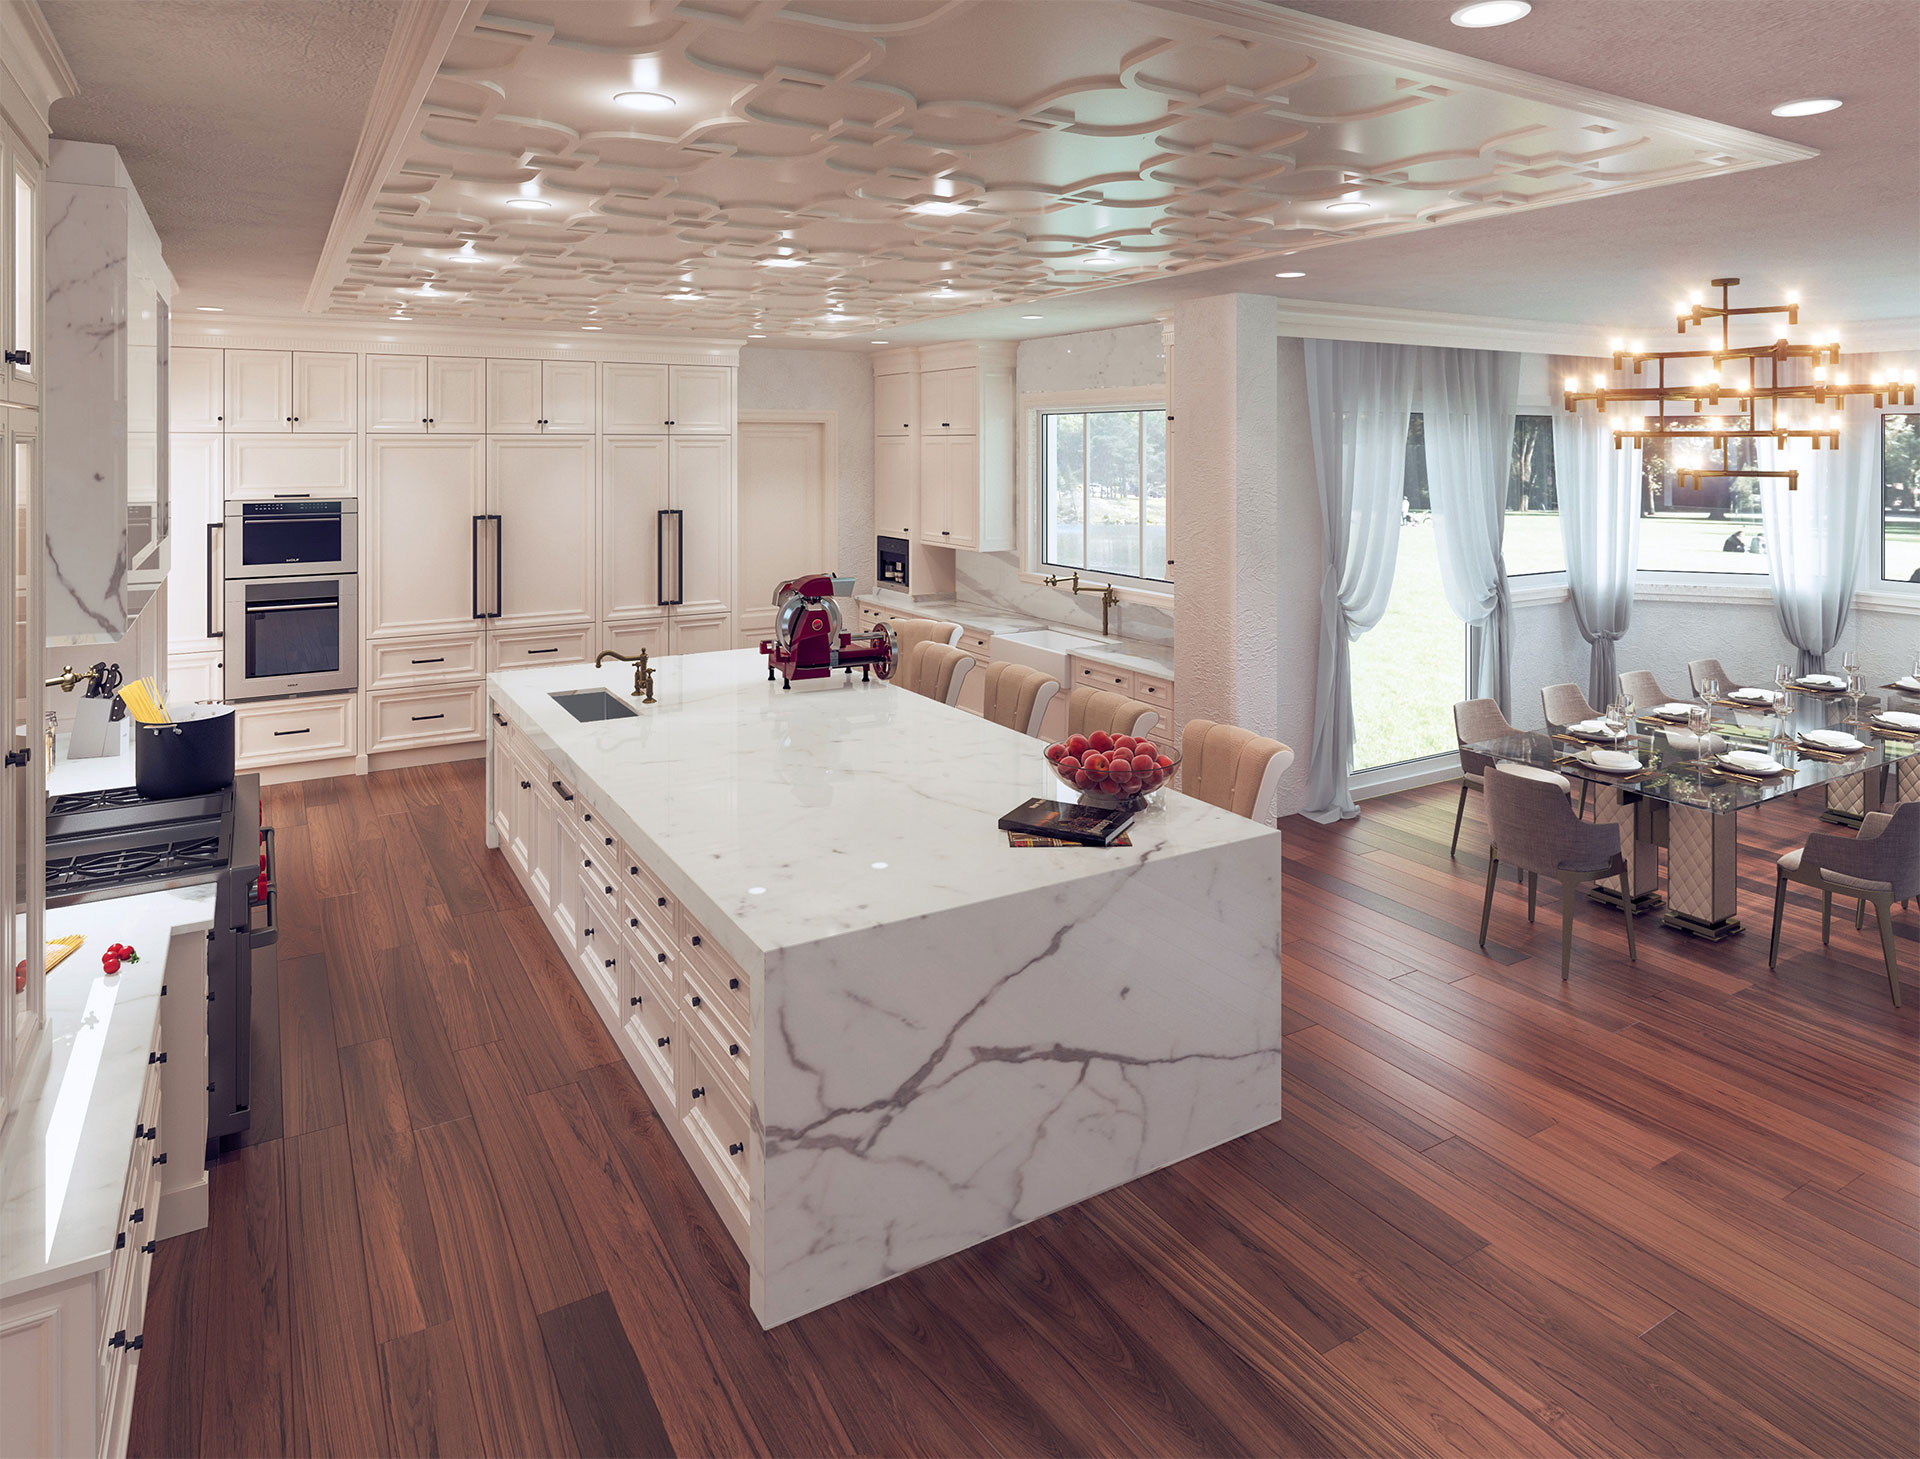 Faoma Luxury White Kitchens